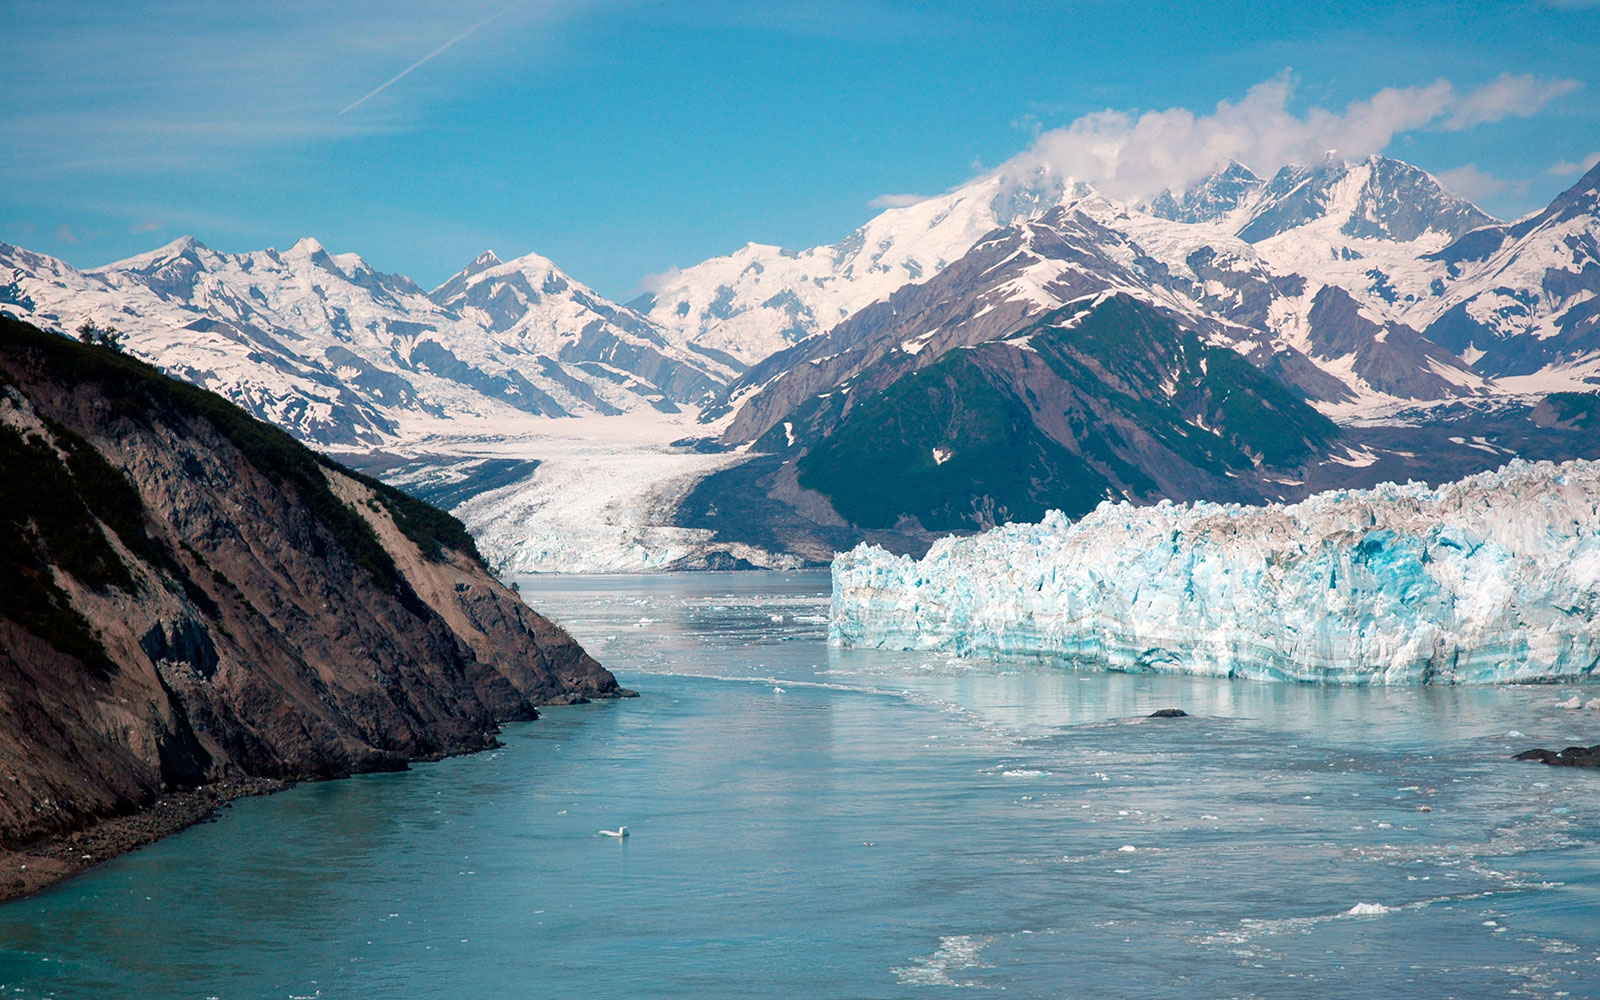 Wrangell-St. Elias National Park and Preserve in Copper Center, Alaska